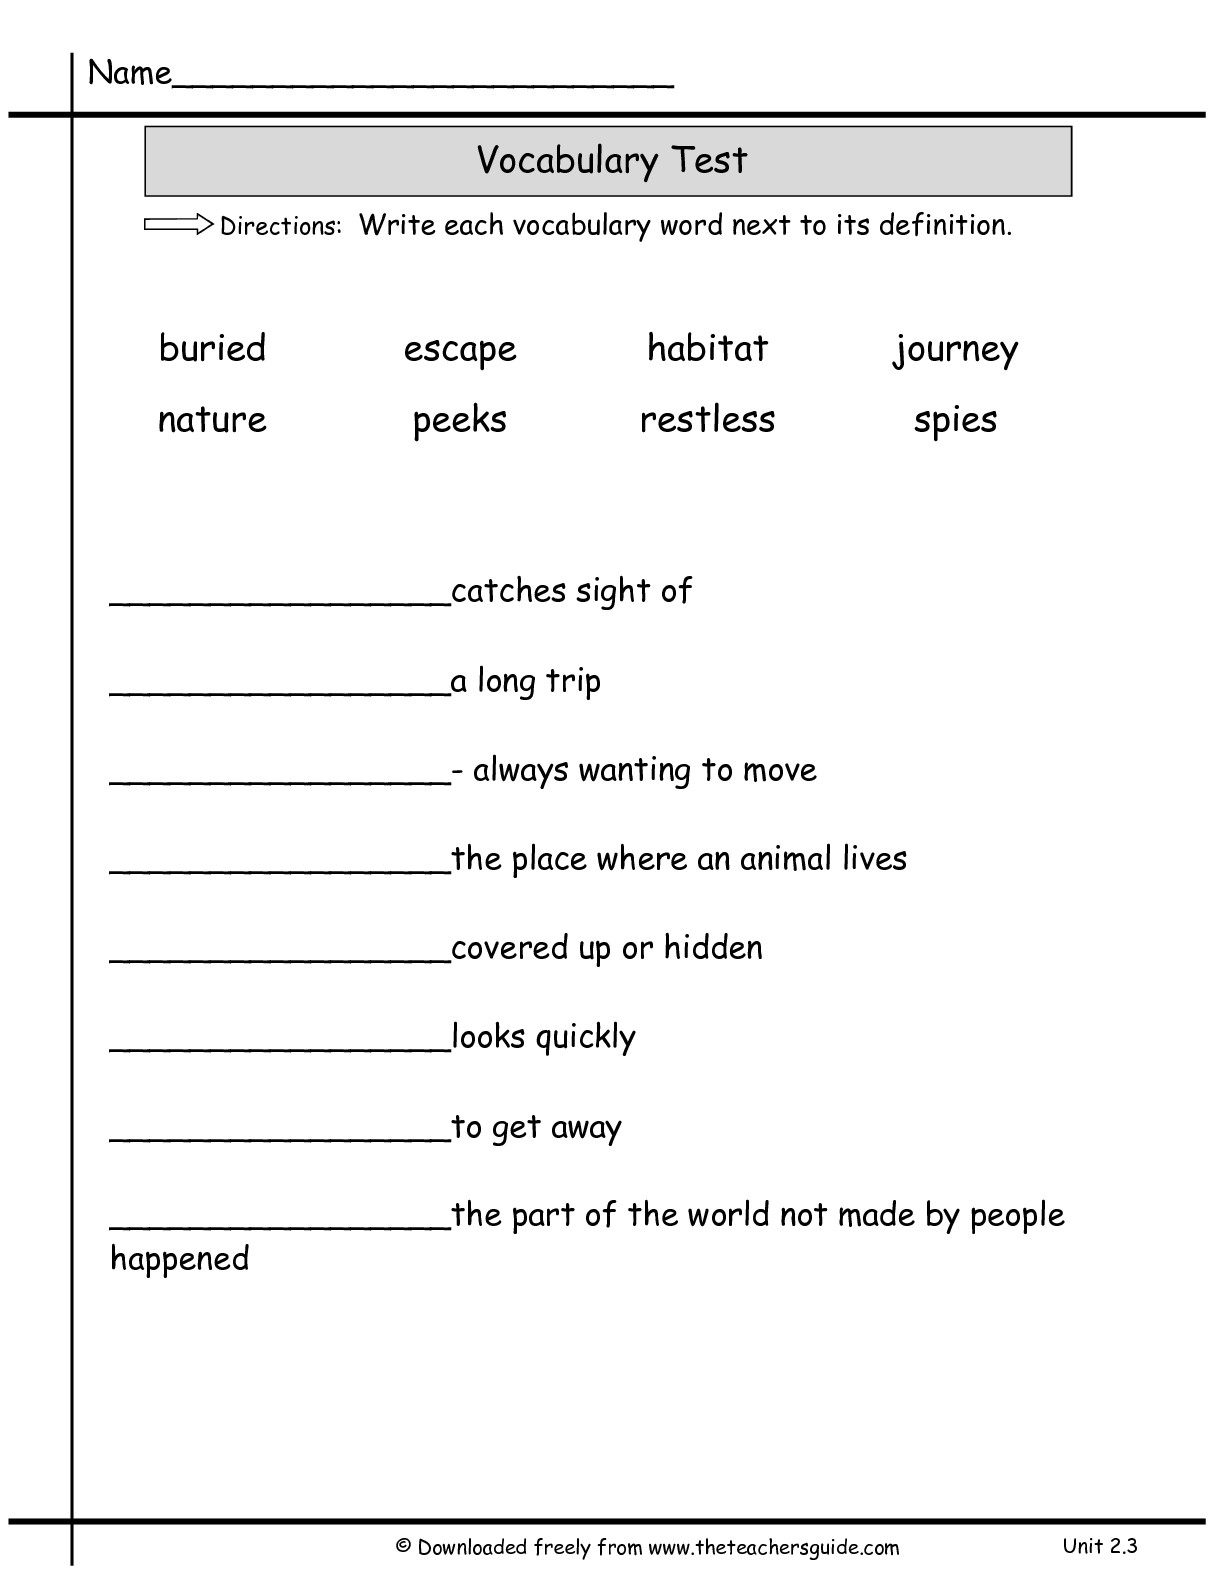 14 Best Images Of Science Vocabulary Word Worksheets